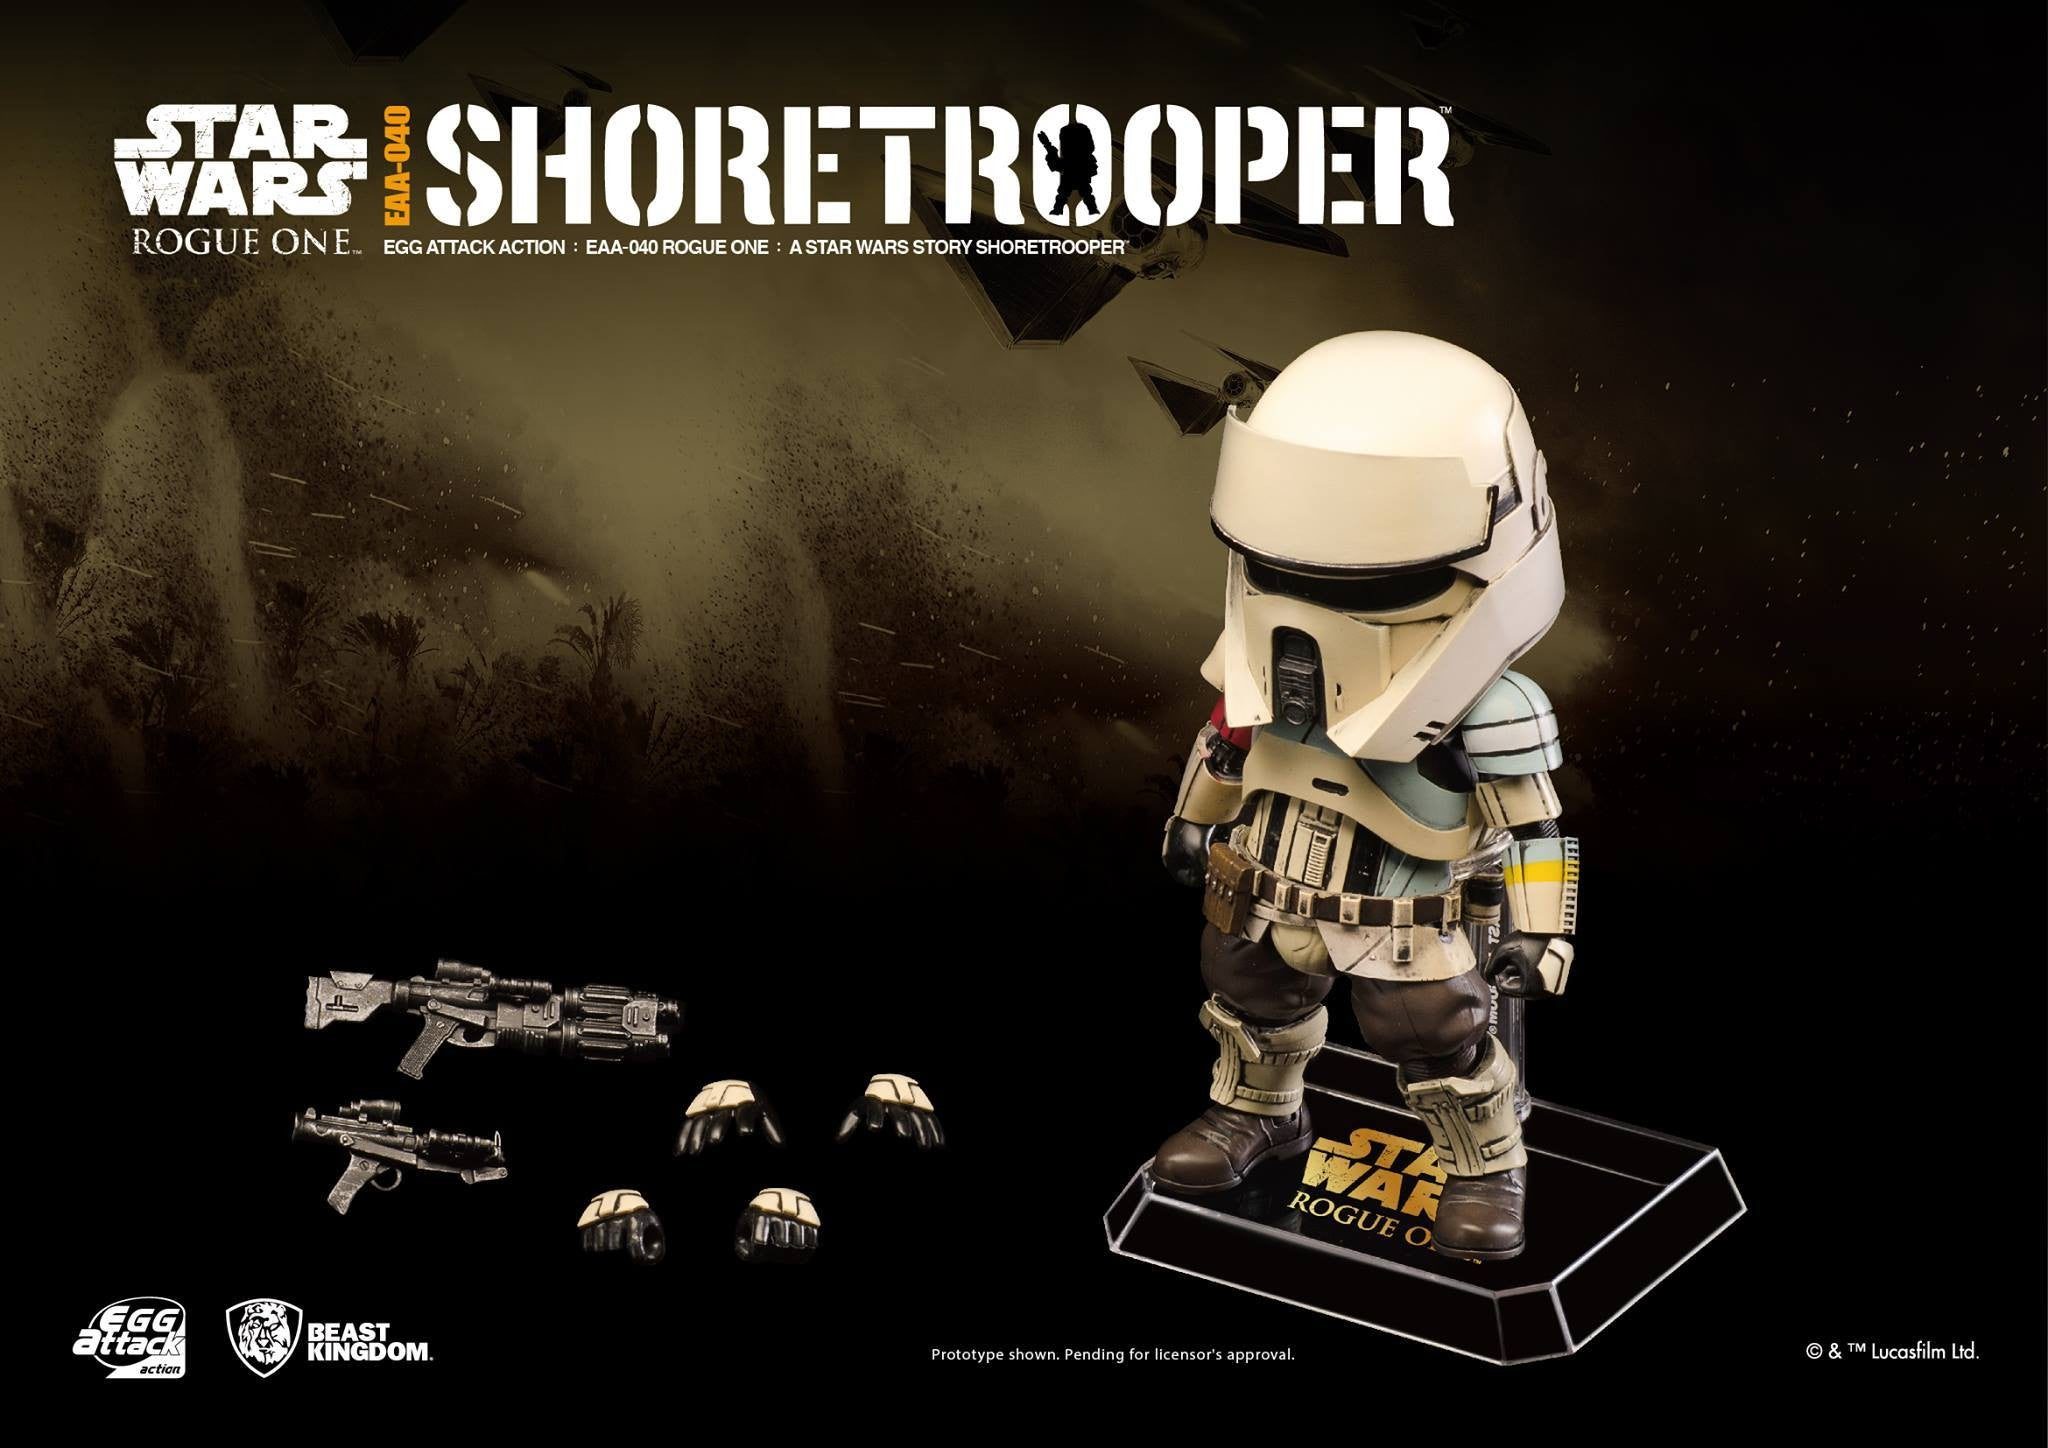 Egg Attack Action EAA-040 - Rogue One: A Star Wars Story - Shoretrooper - Marvelous Toys - 4